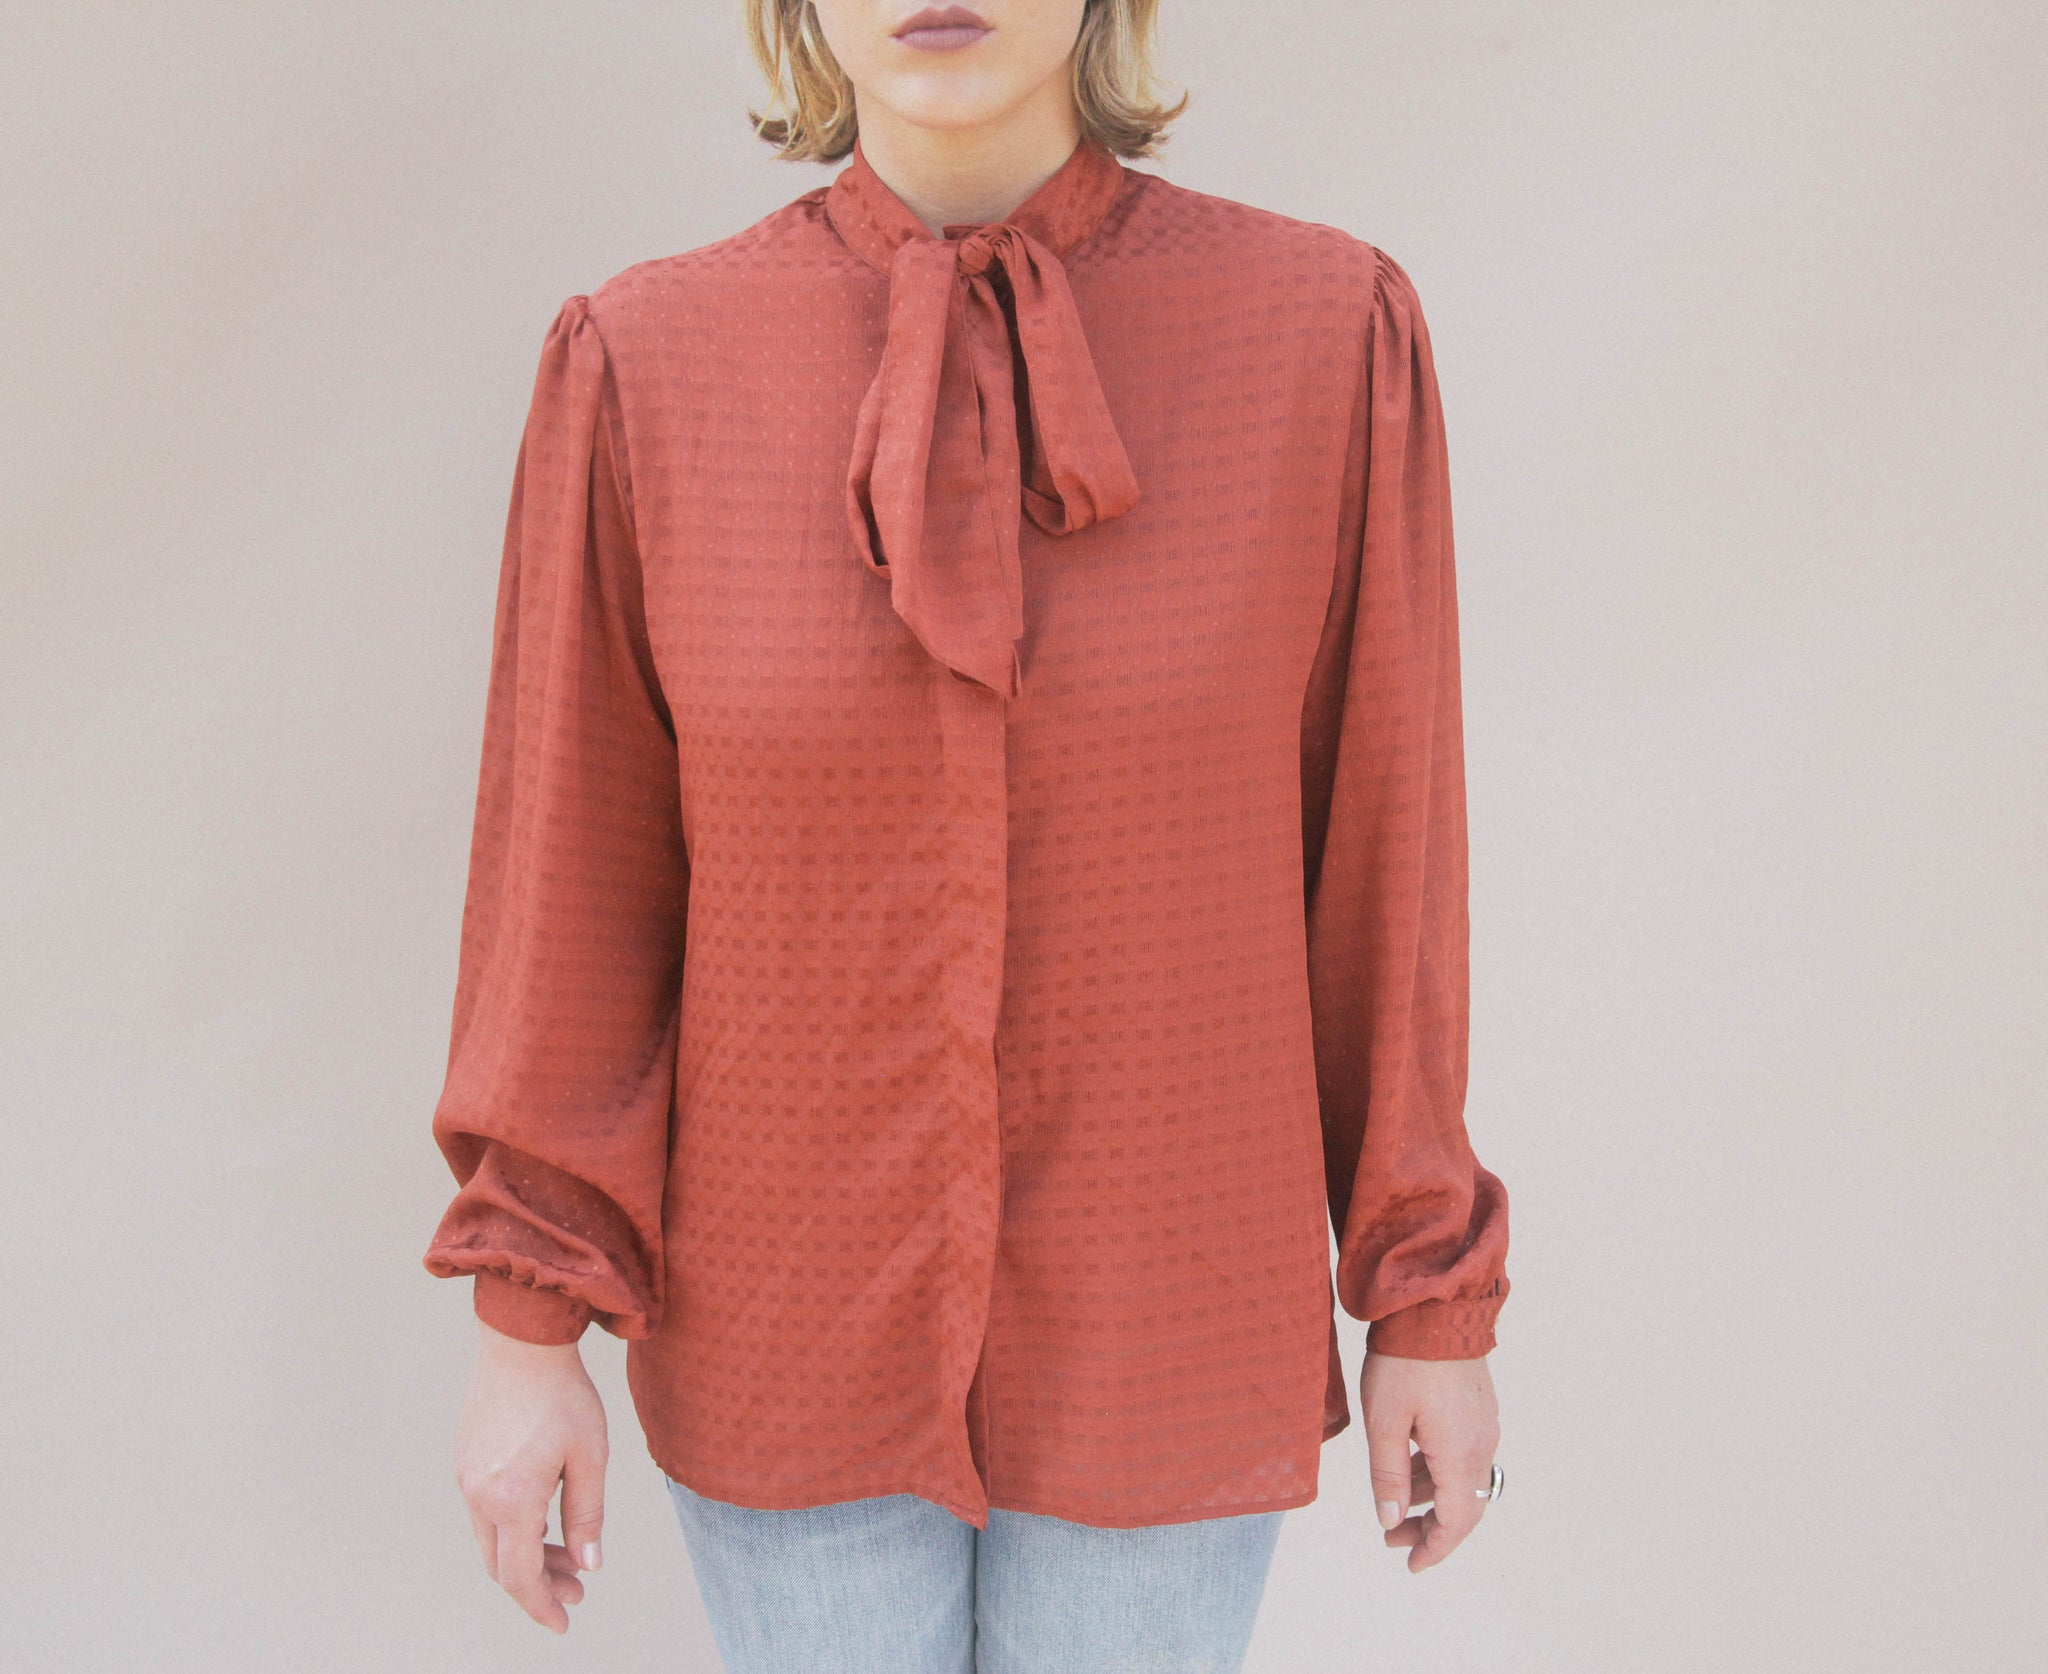 80's Actlll Rust Blouse